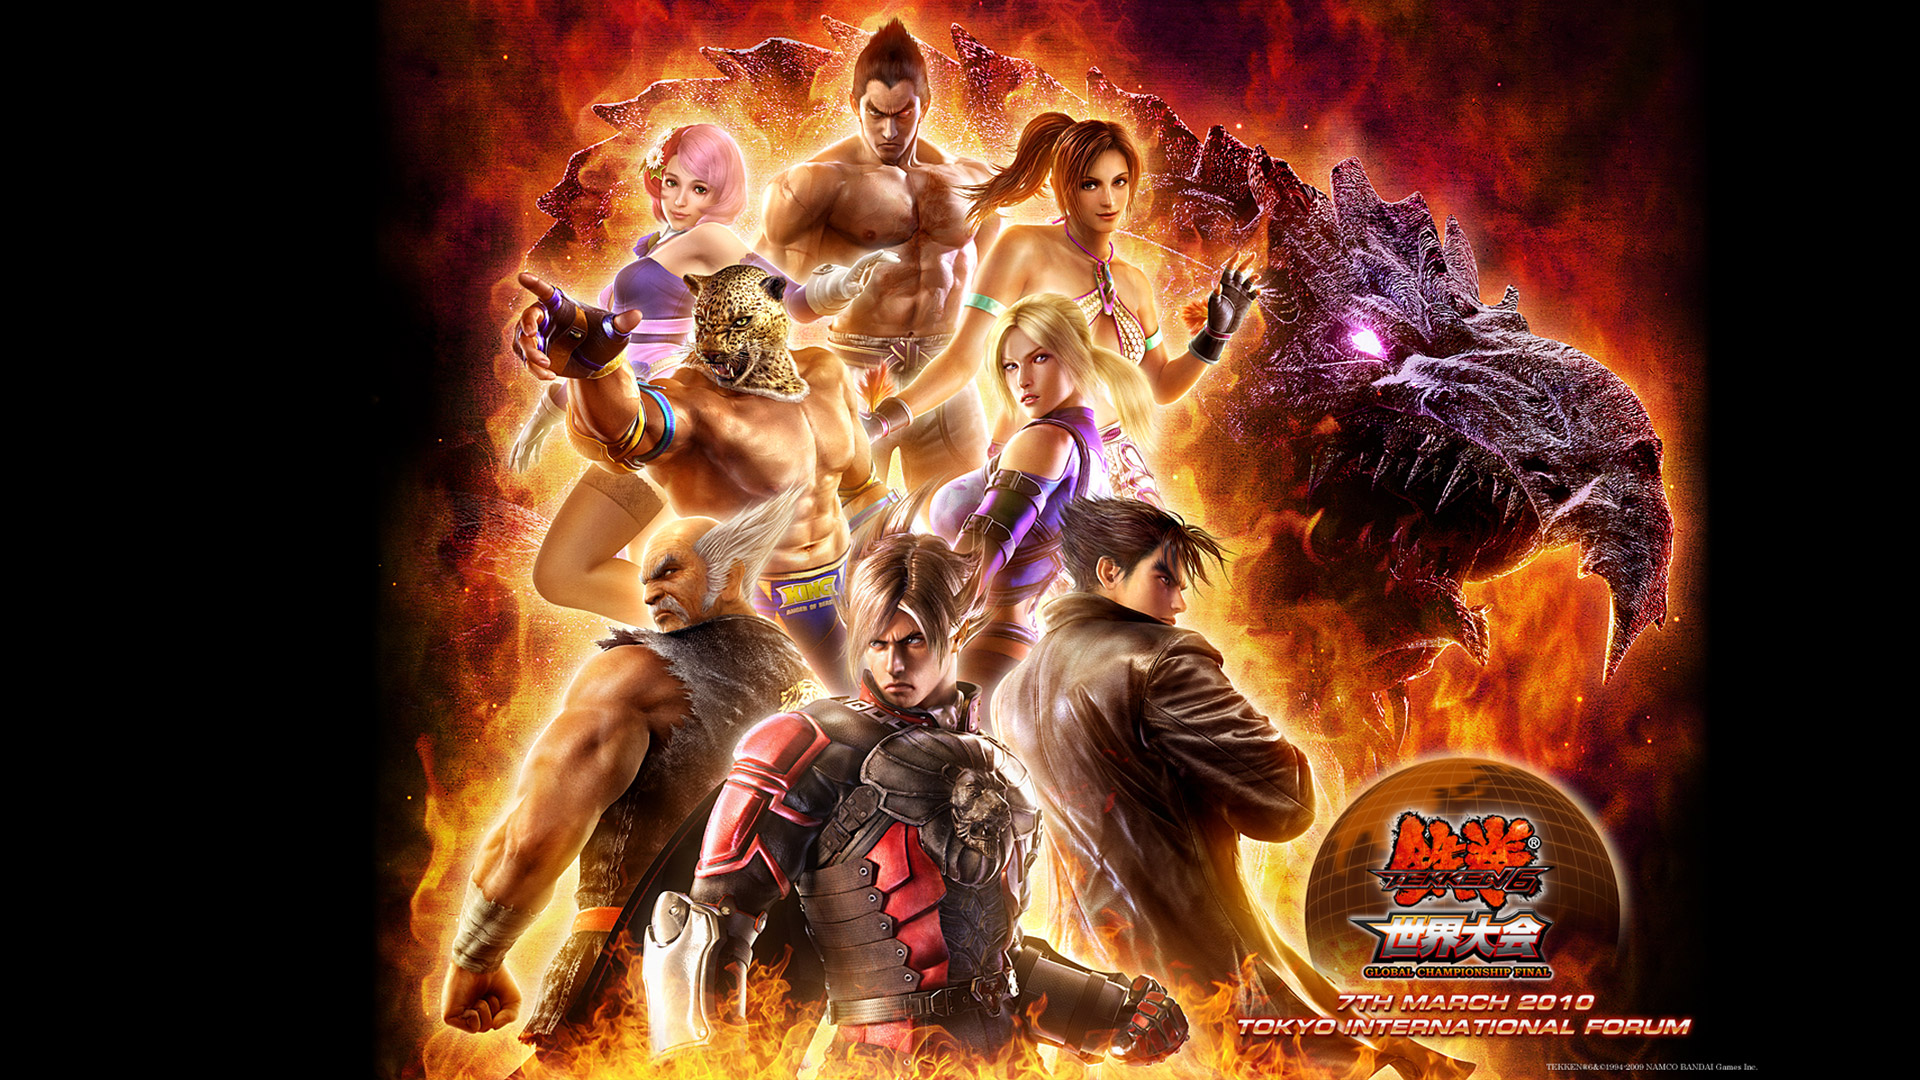 Tekken 6 Wallpaper in 1920x1080